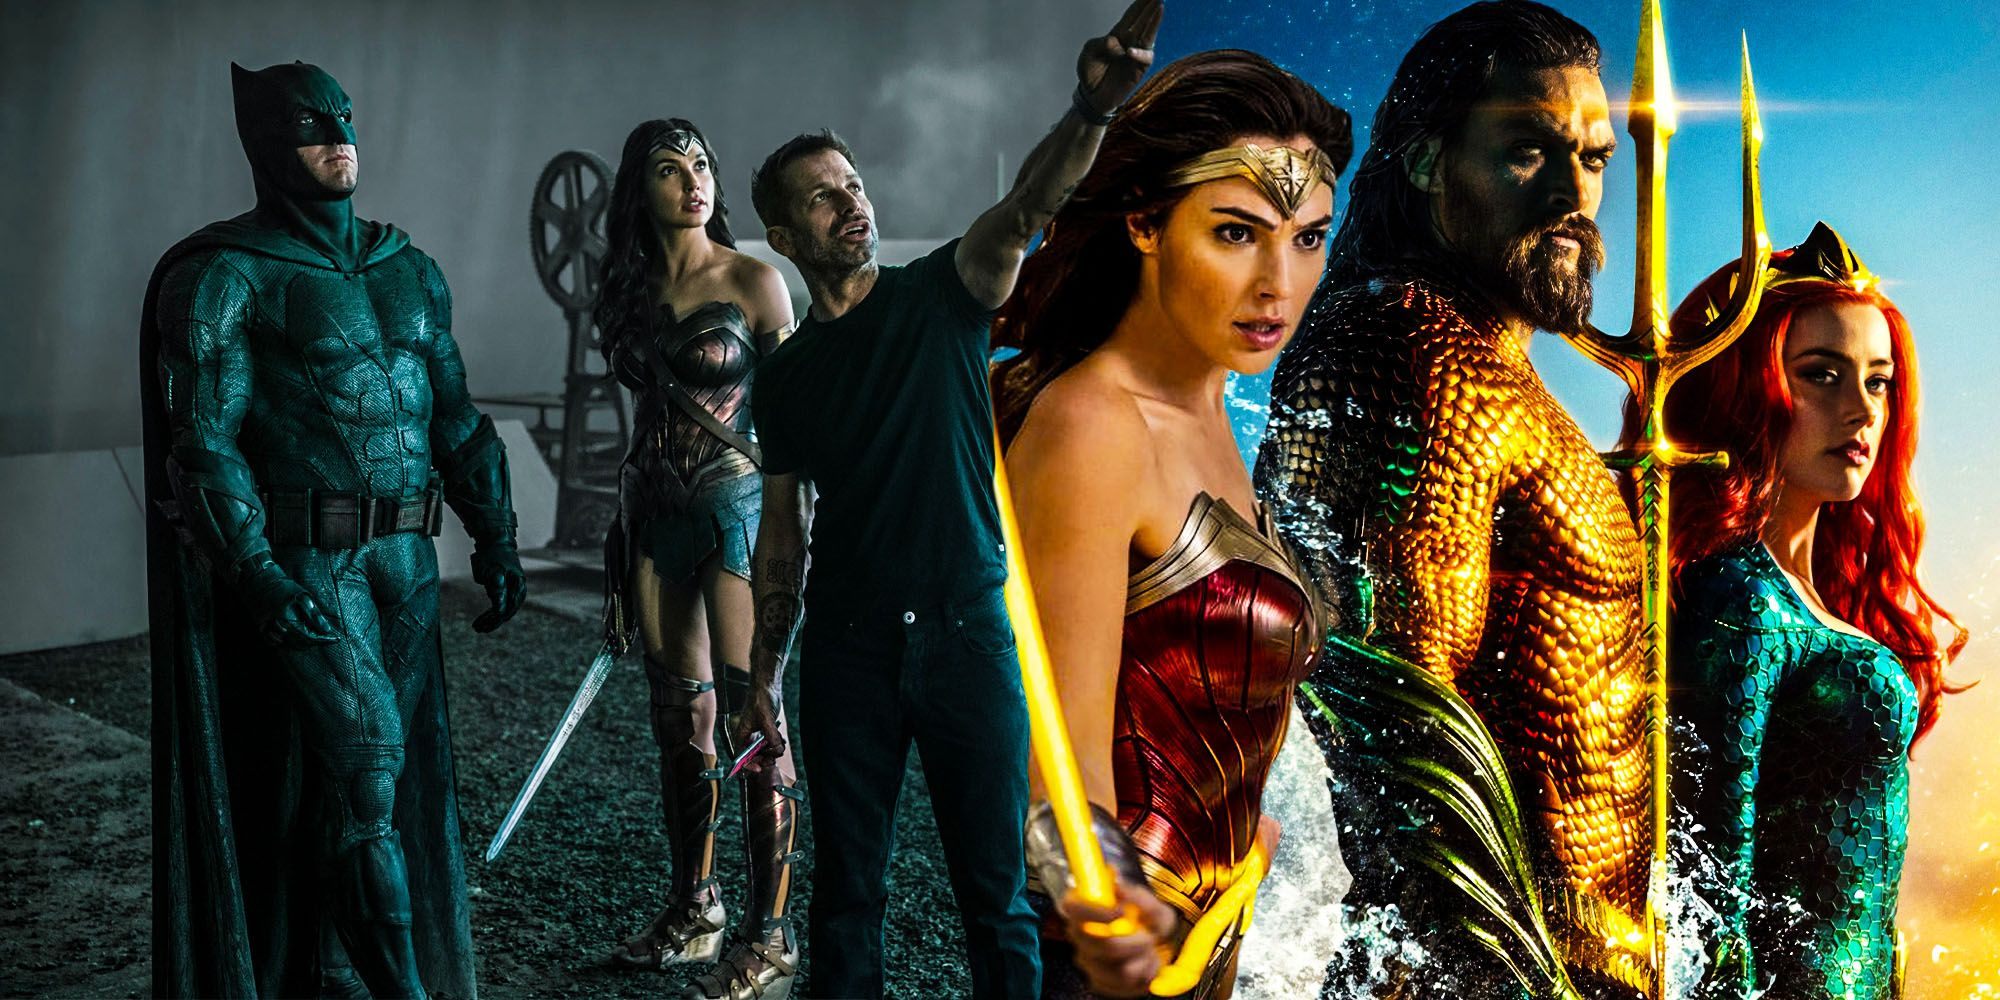 How Zack Snyder's DC Films Compare to Other DCEU Movies on Rotten Tomatoes